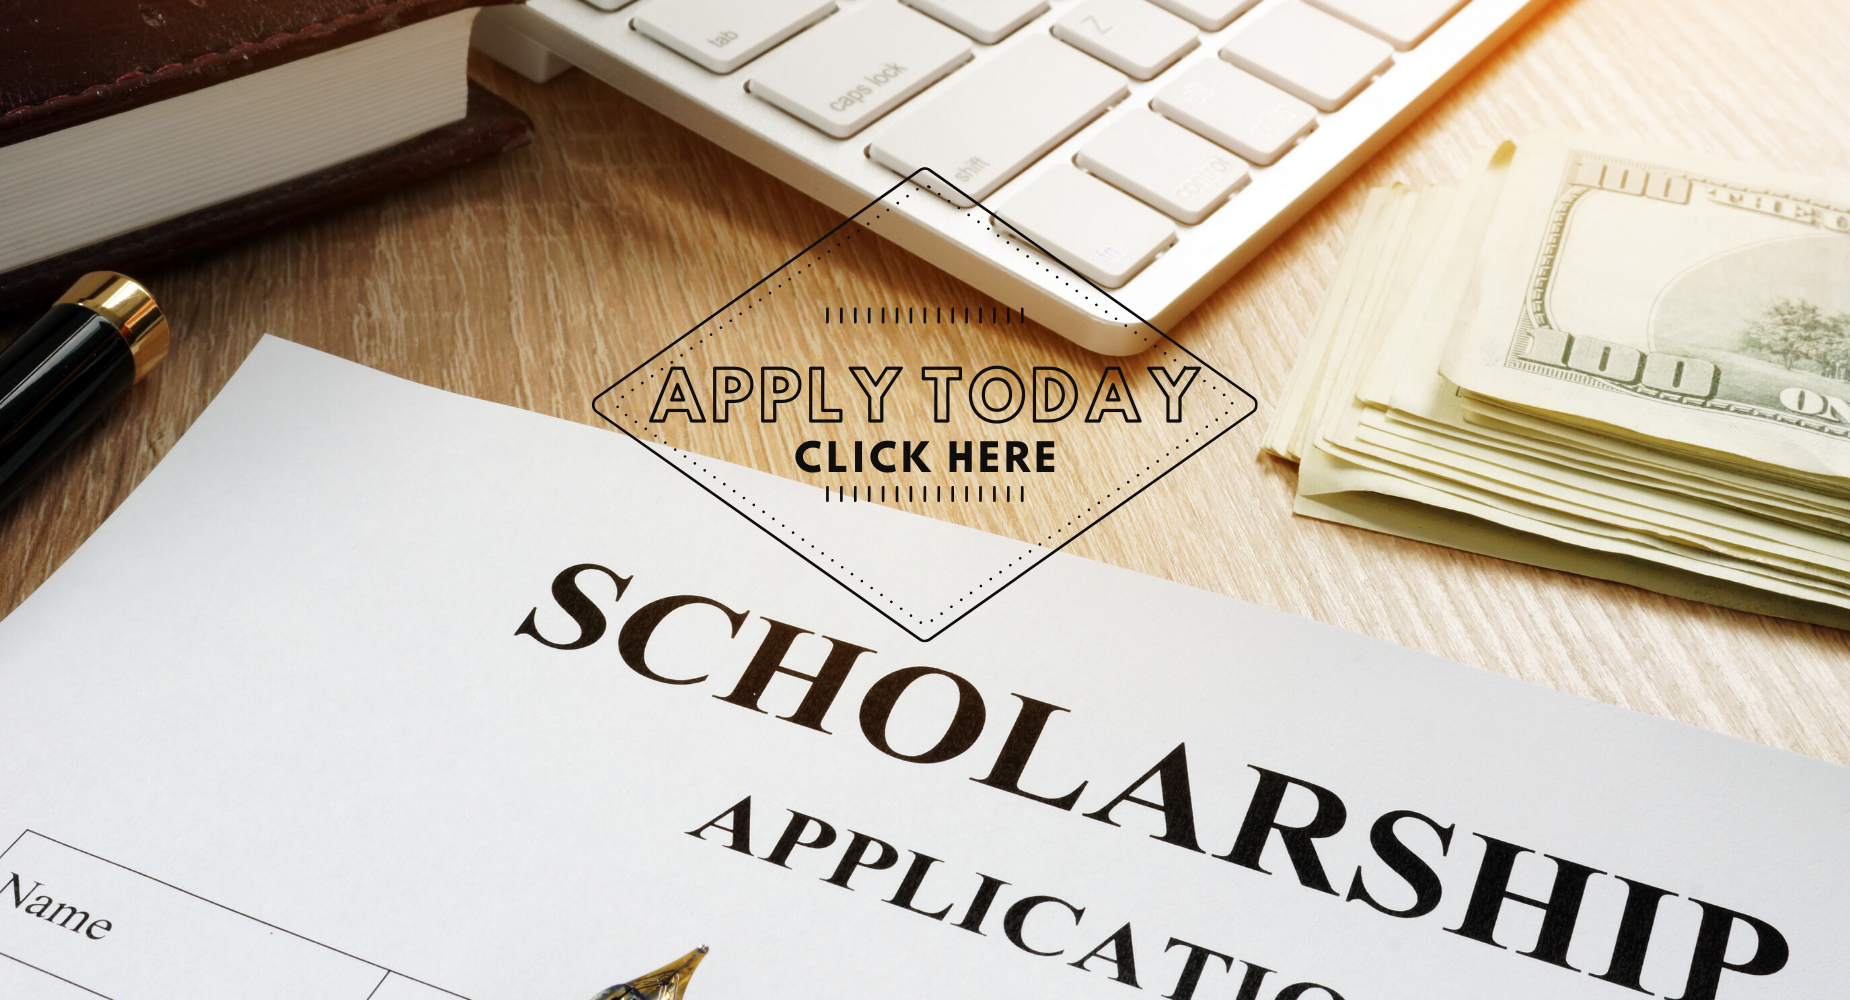 https://www.slpsb.org/apps/pages/scholarship_opportunities